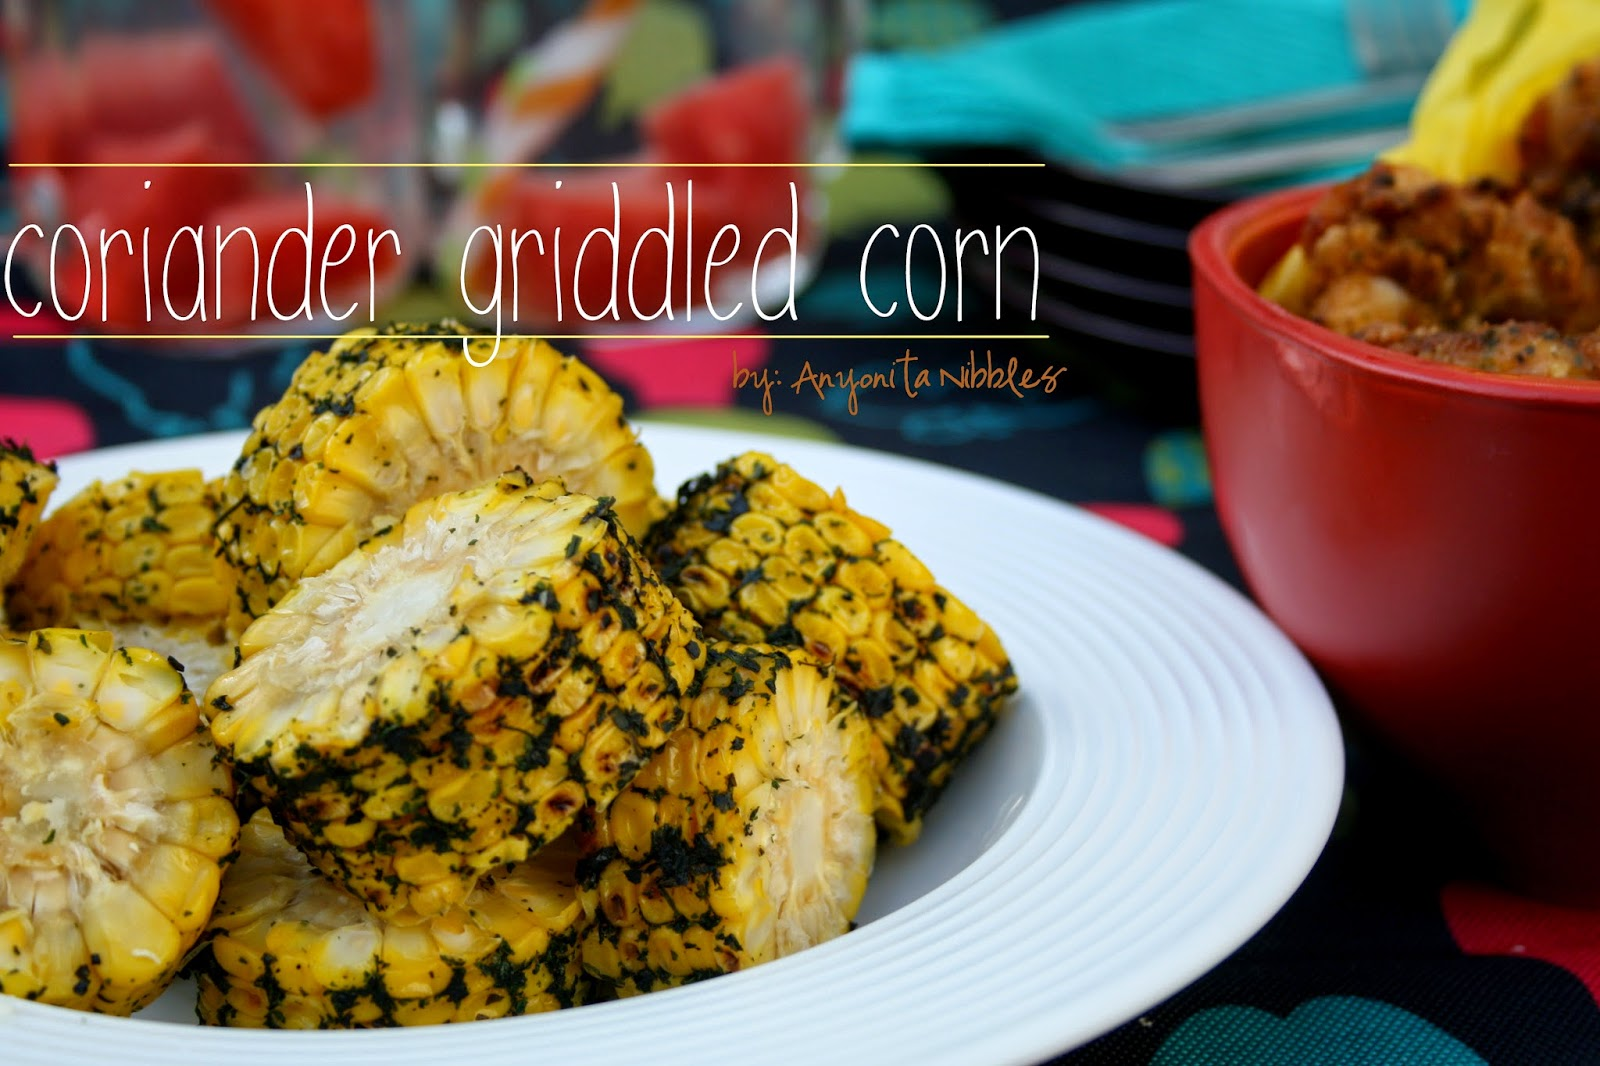 Tender Coriander Griddled Corn with Garlic Salt from Anyonita Nibbles